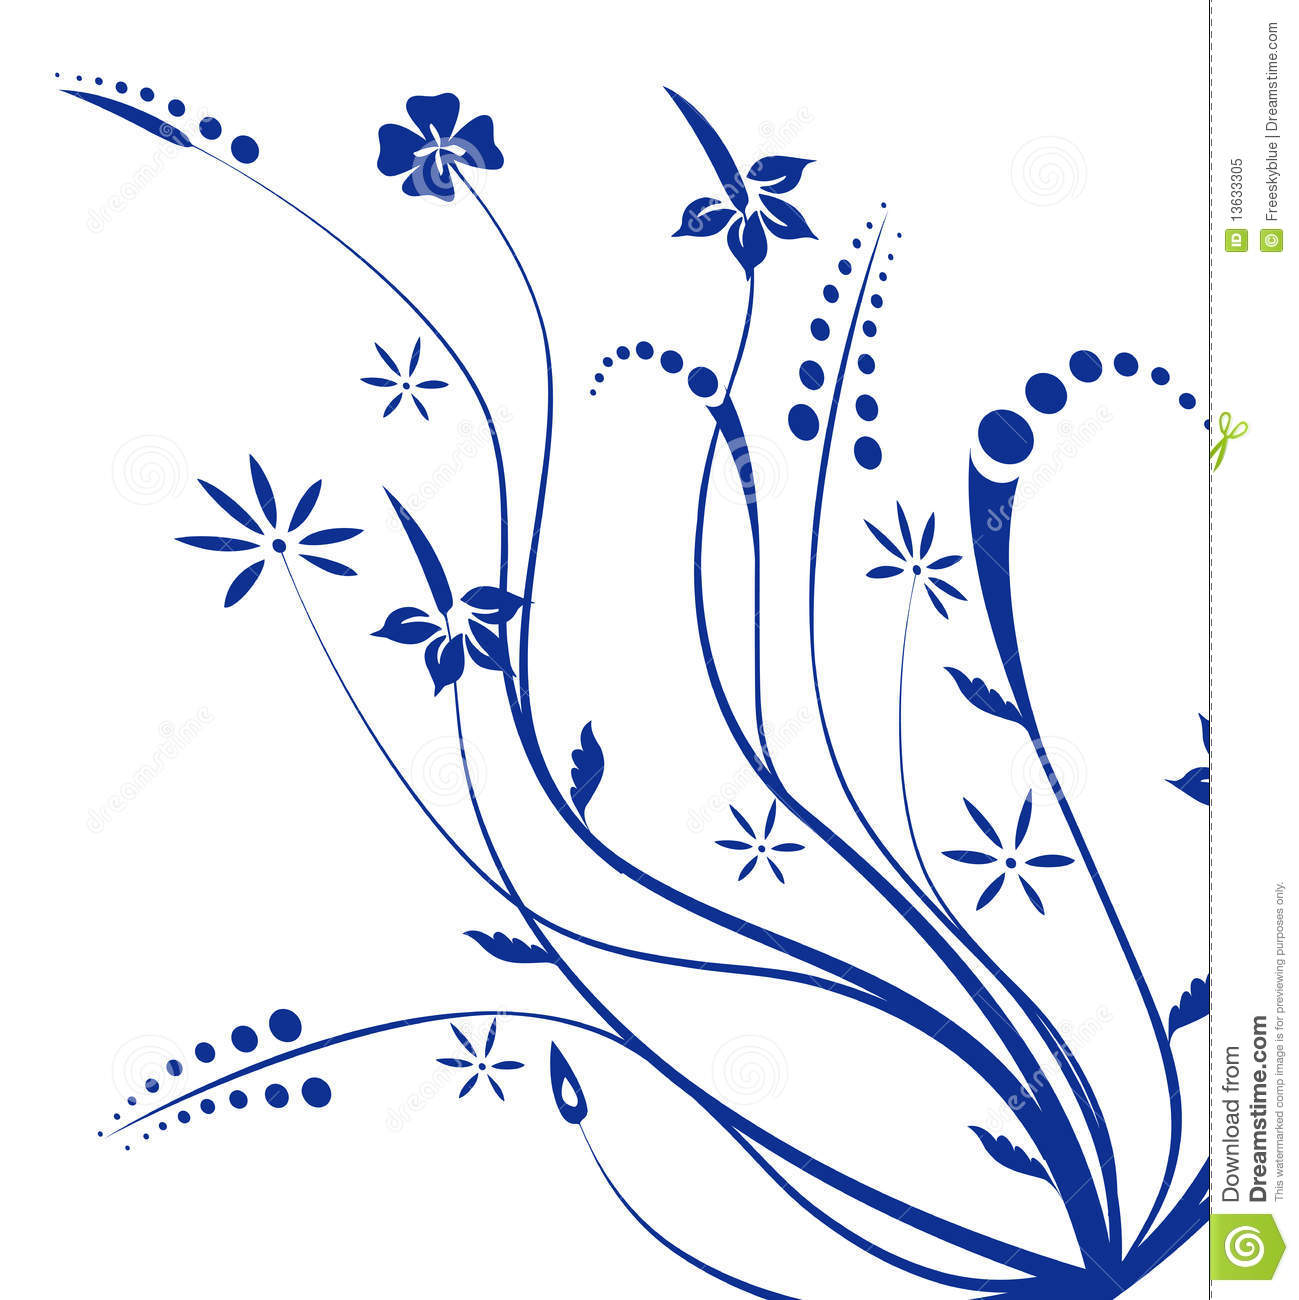 Blue Flower And Vines Texture Stock Illustration Illustration Of Blossom Circle 13633305